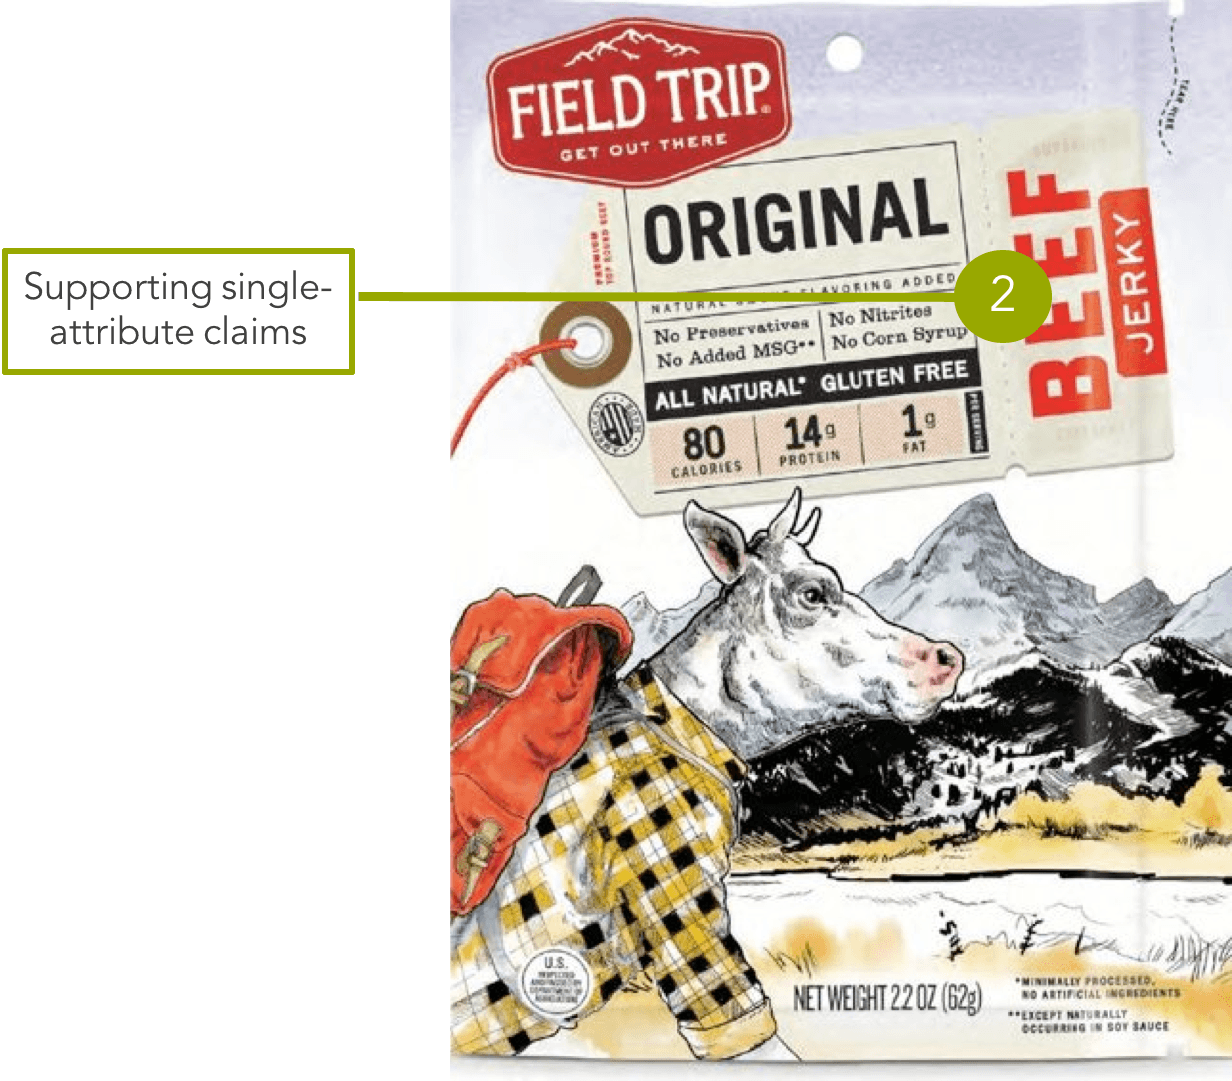 Field Trip beef jerky packaging featuring supporting single-attribute claims